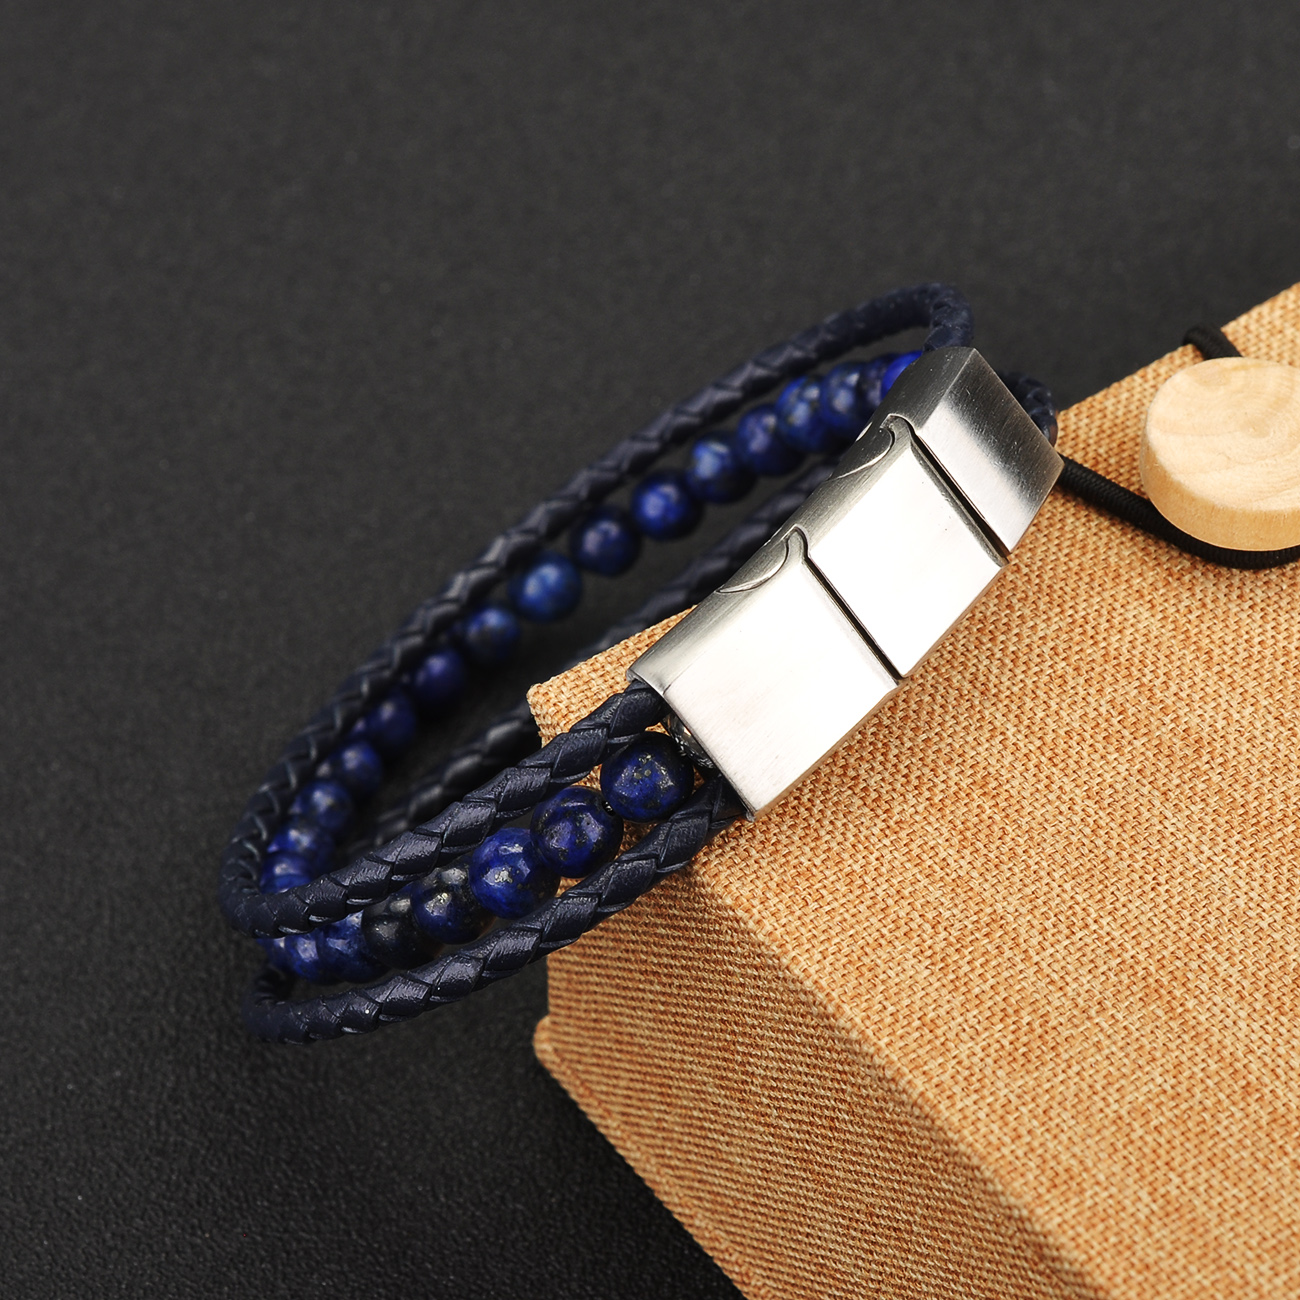 China Supplier Custom Stainless Steel Clasp Charm Stone Bead Black Braided Leather Bracelet Men